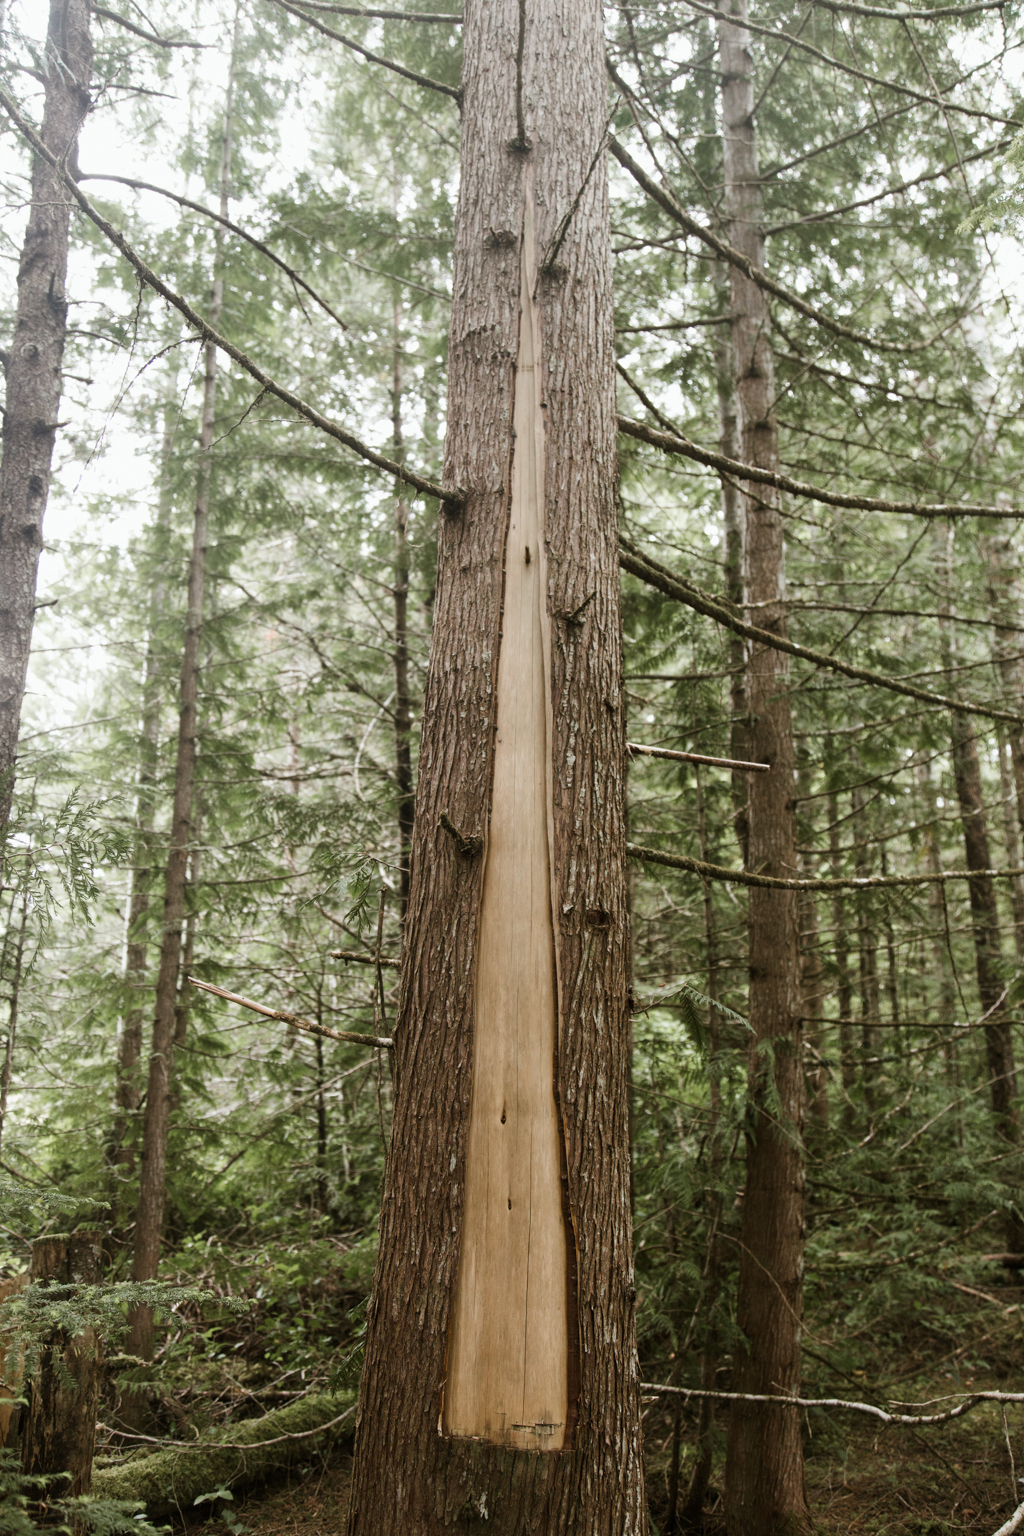 A tall cedar tree with a strip of bark removed.